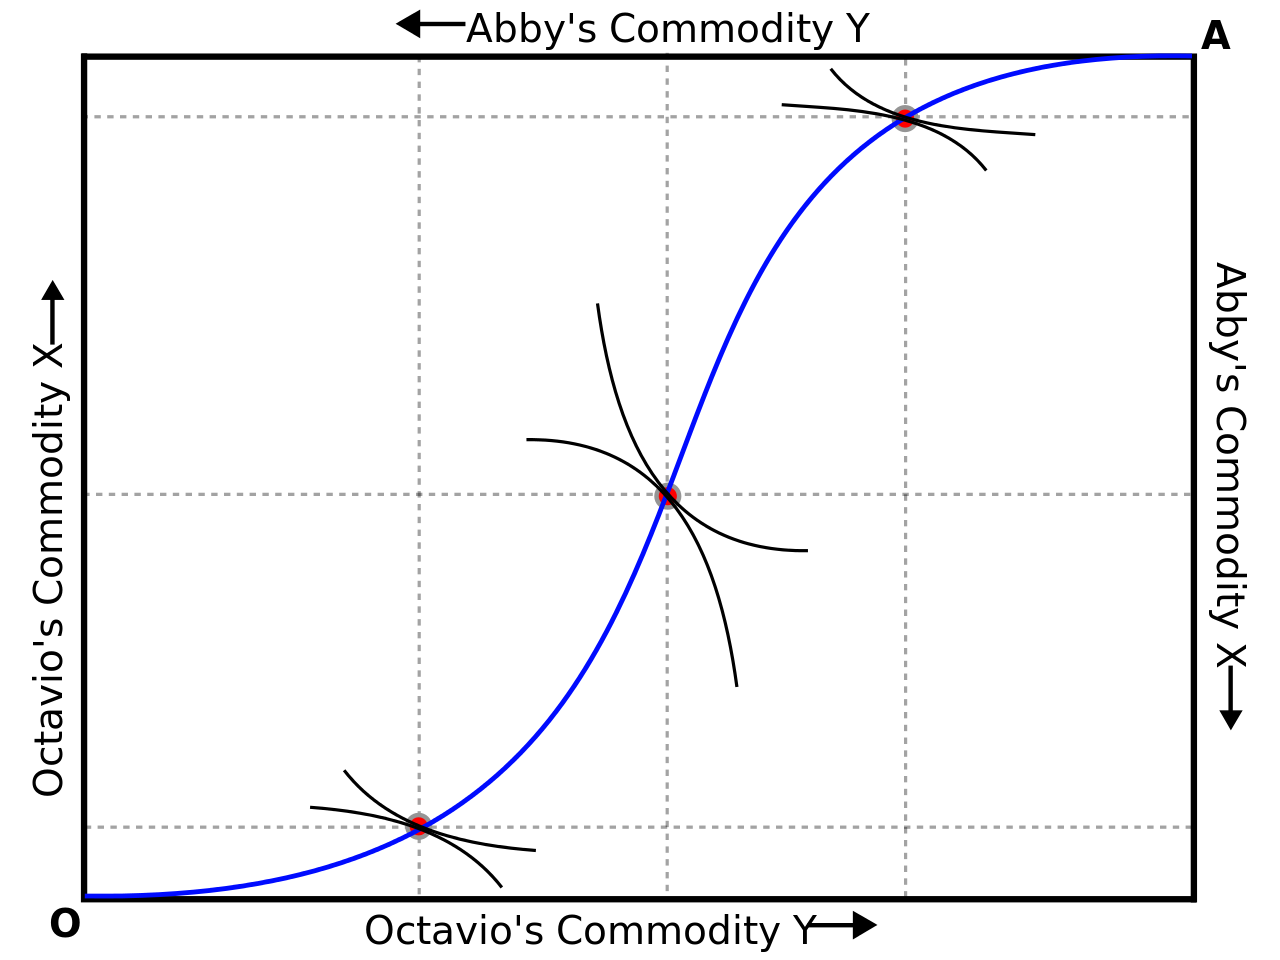 Shape svg curve. File contract on edgeworth